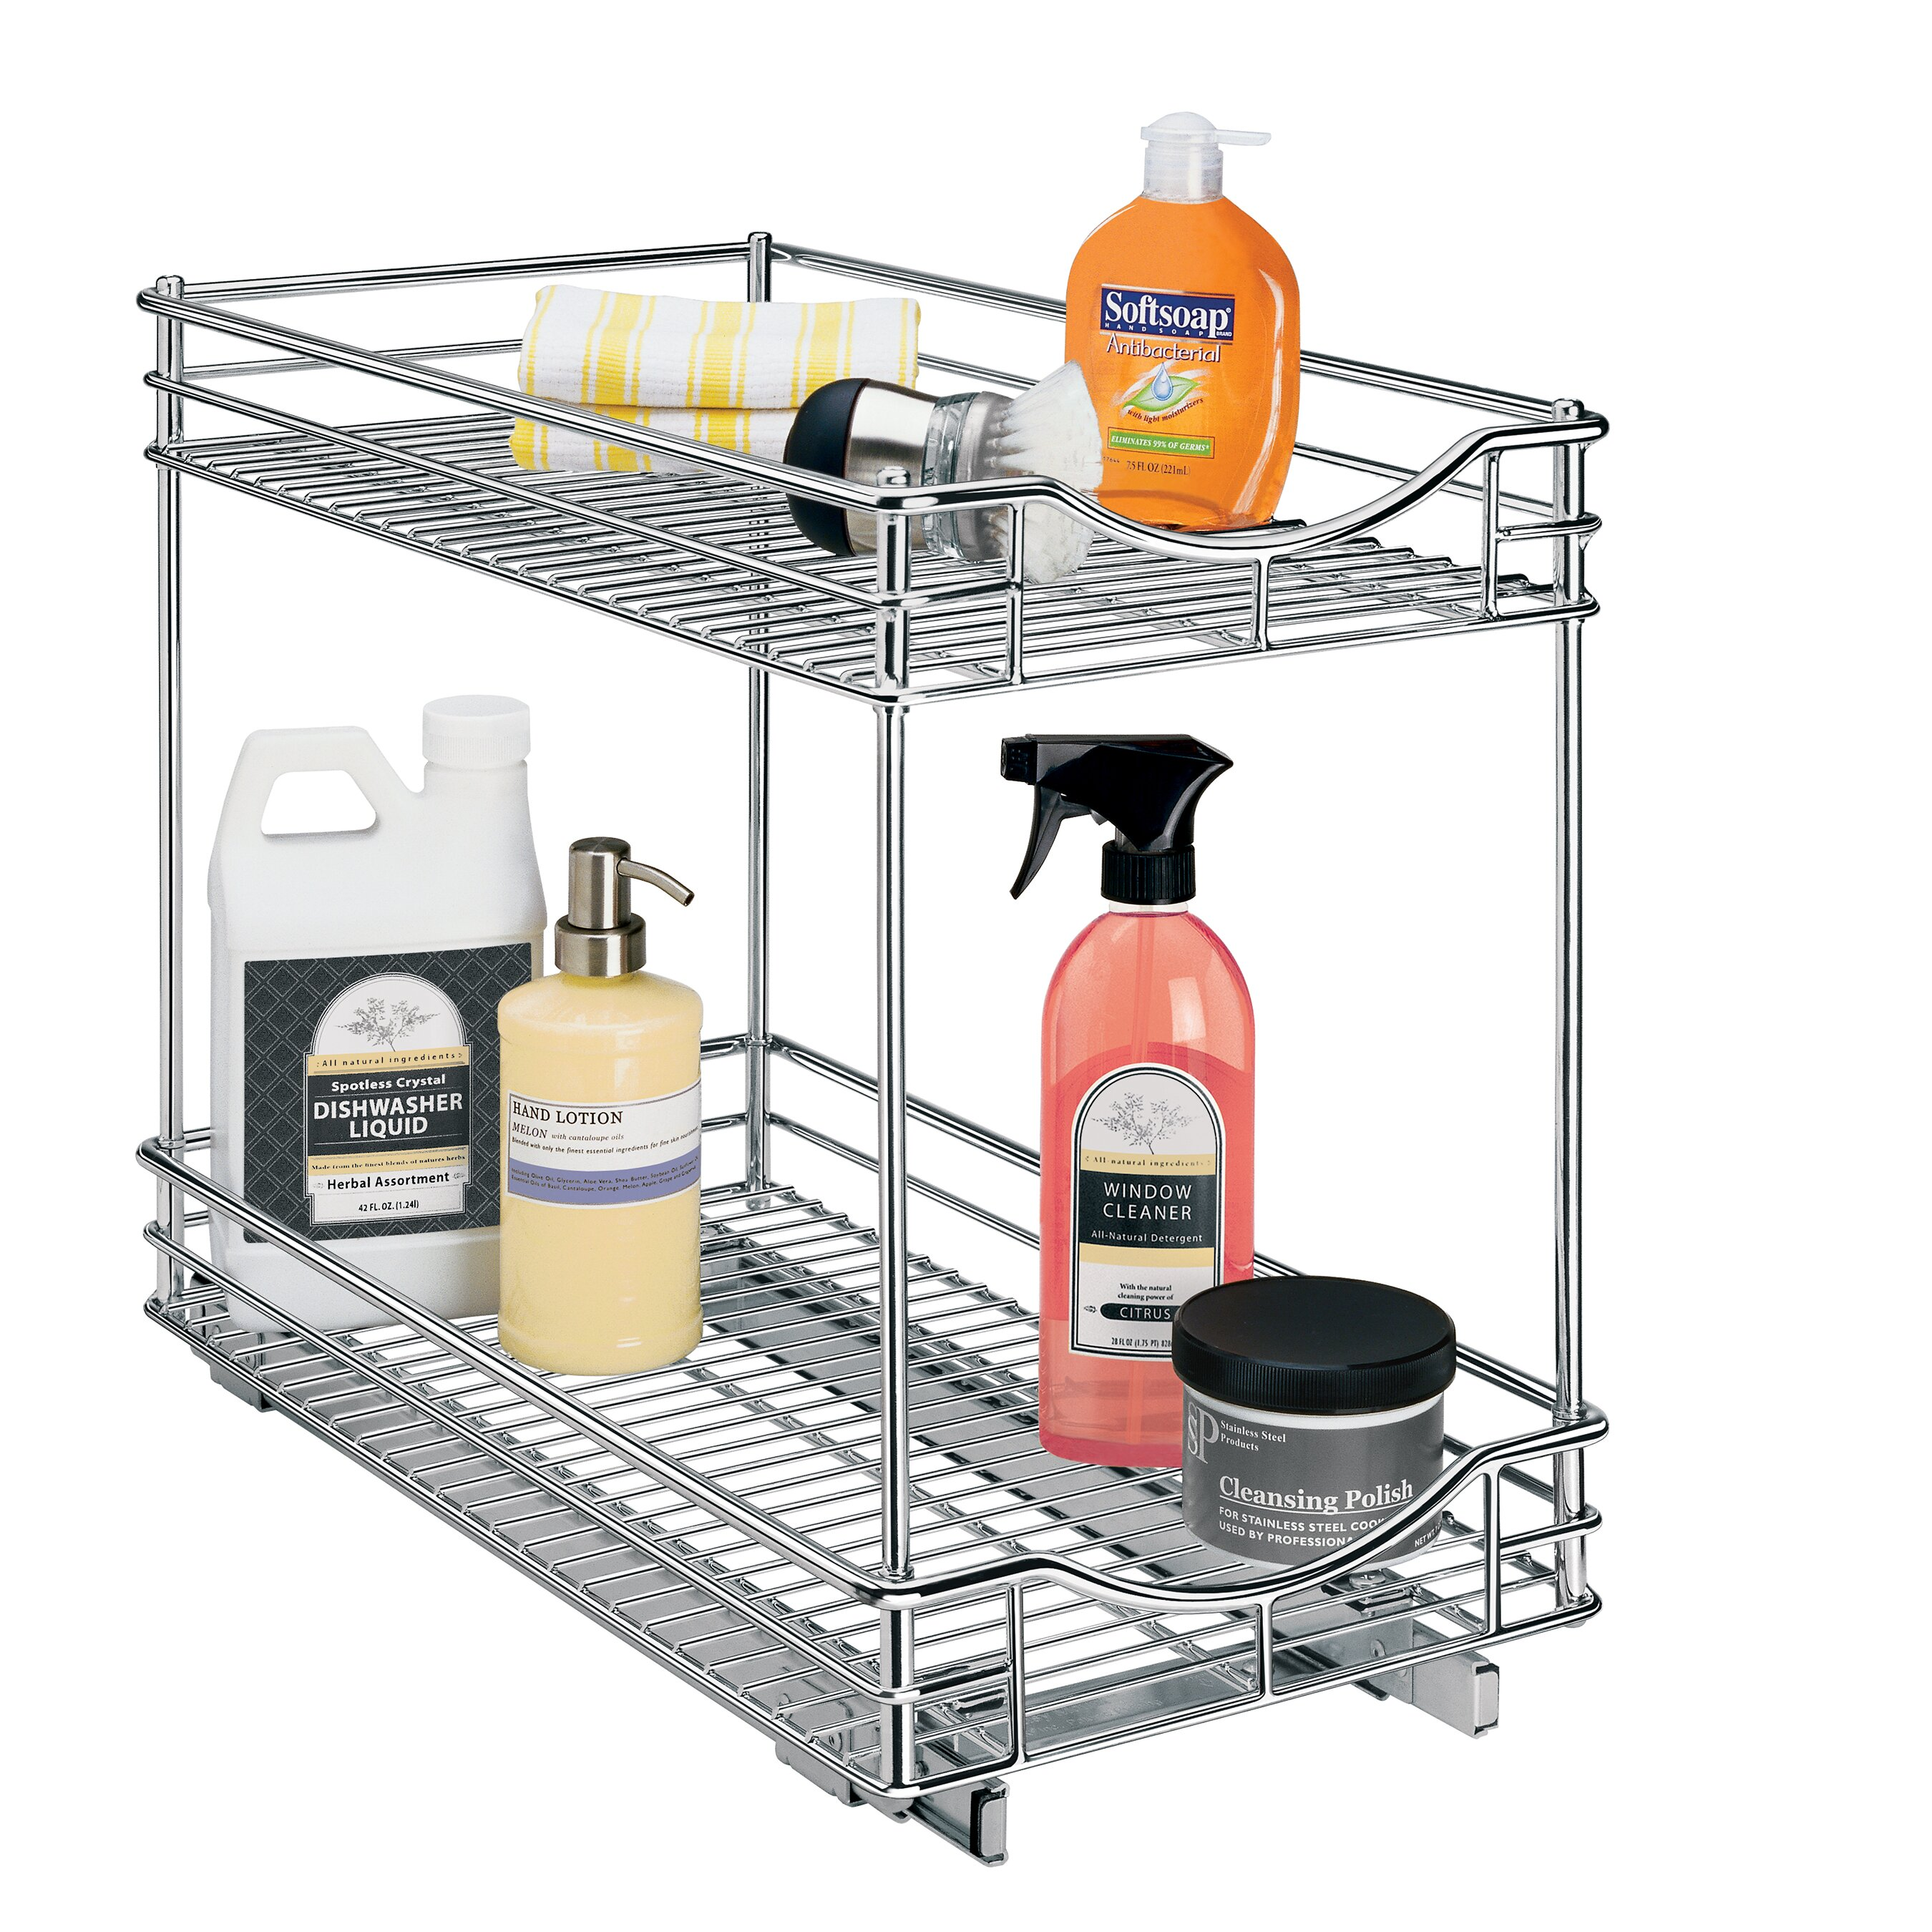 Lynk Roll Out Cabinet Organizer: Lynk Roll Out Double Shelf